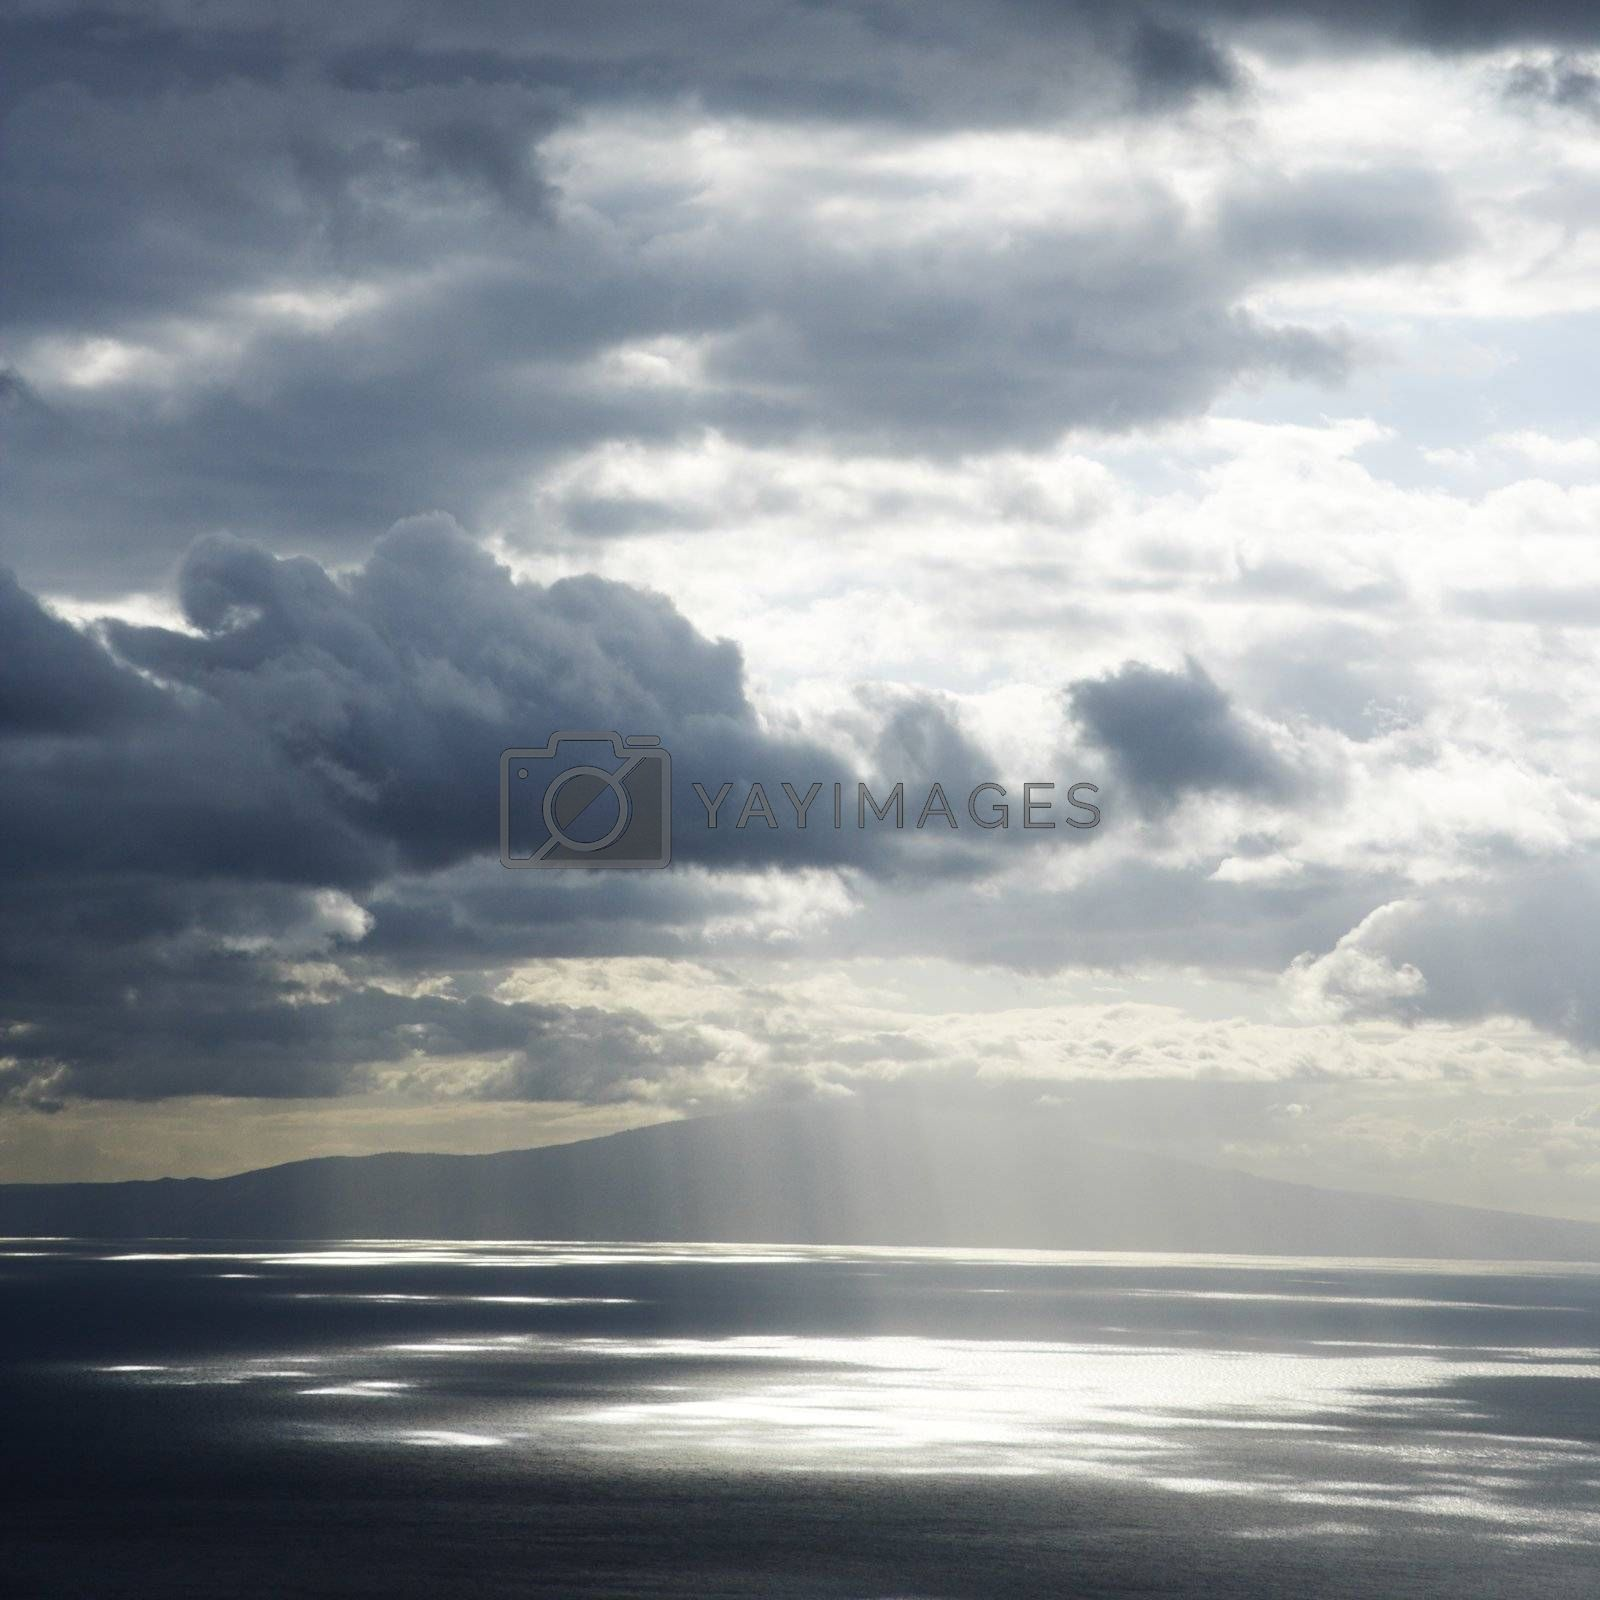 View of island in Pacific ocean with clouds from Maui, Hawaii.